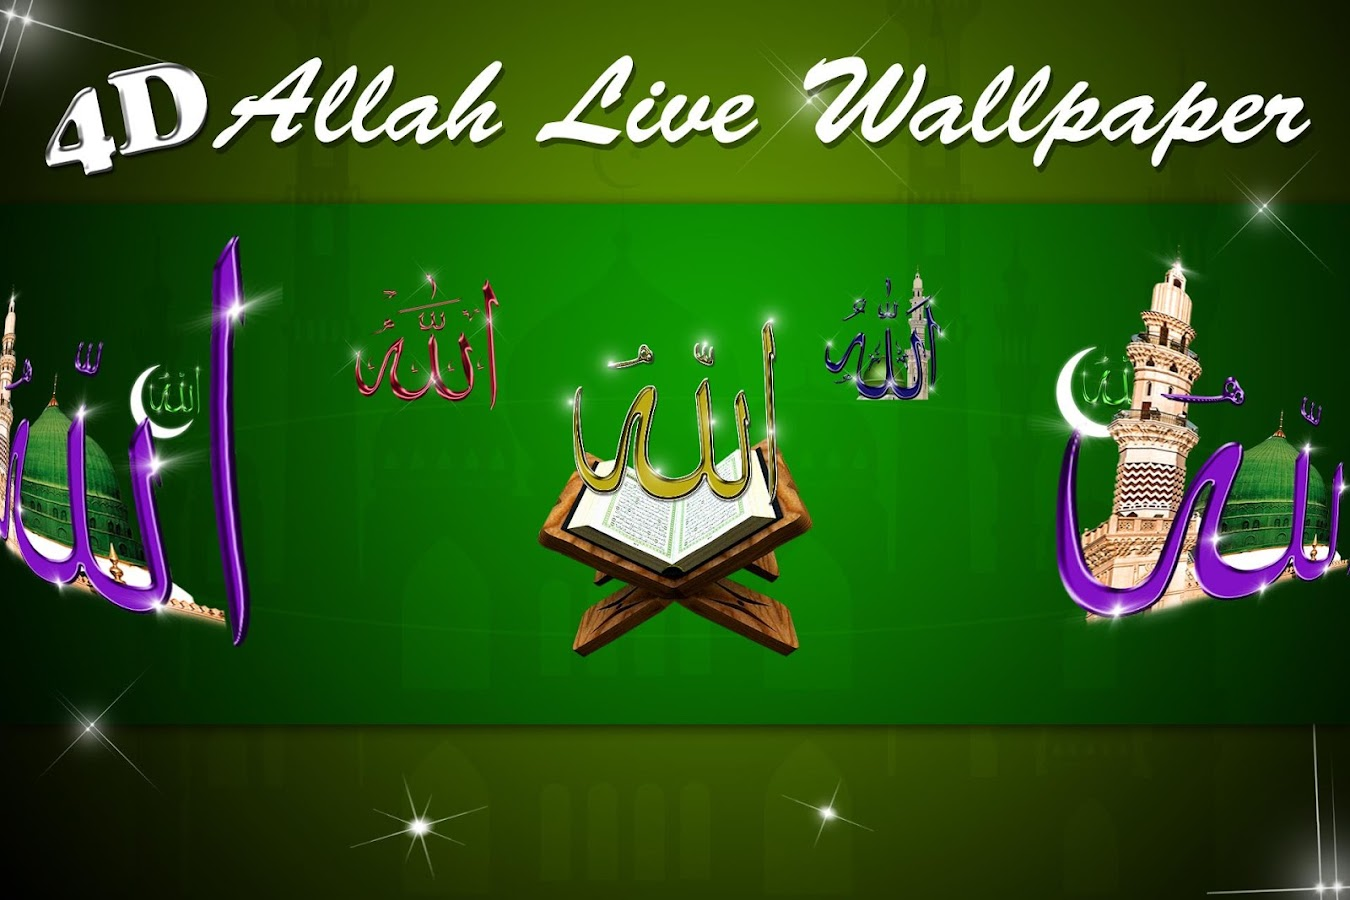 Allah 4d live wallpaper android apps on google play for 4d wallpaper for home